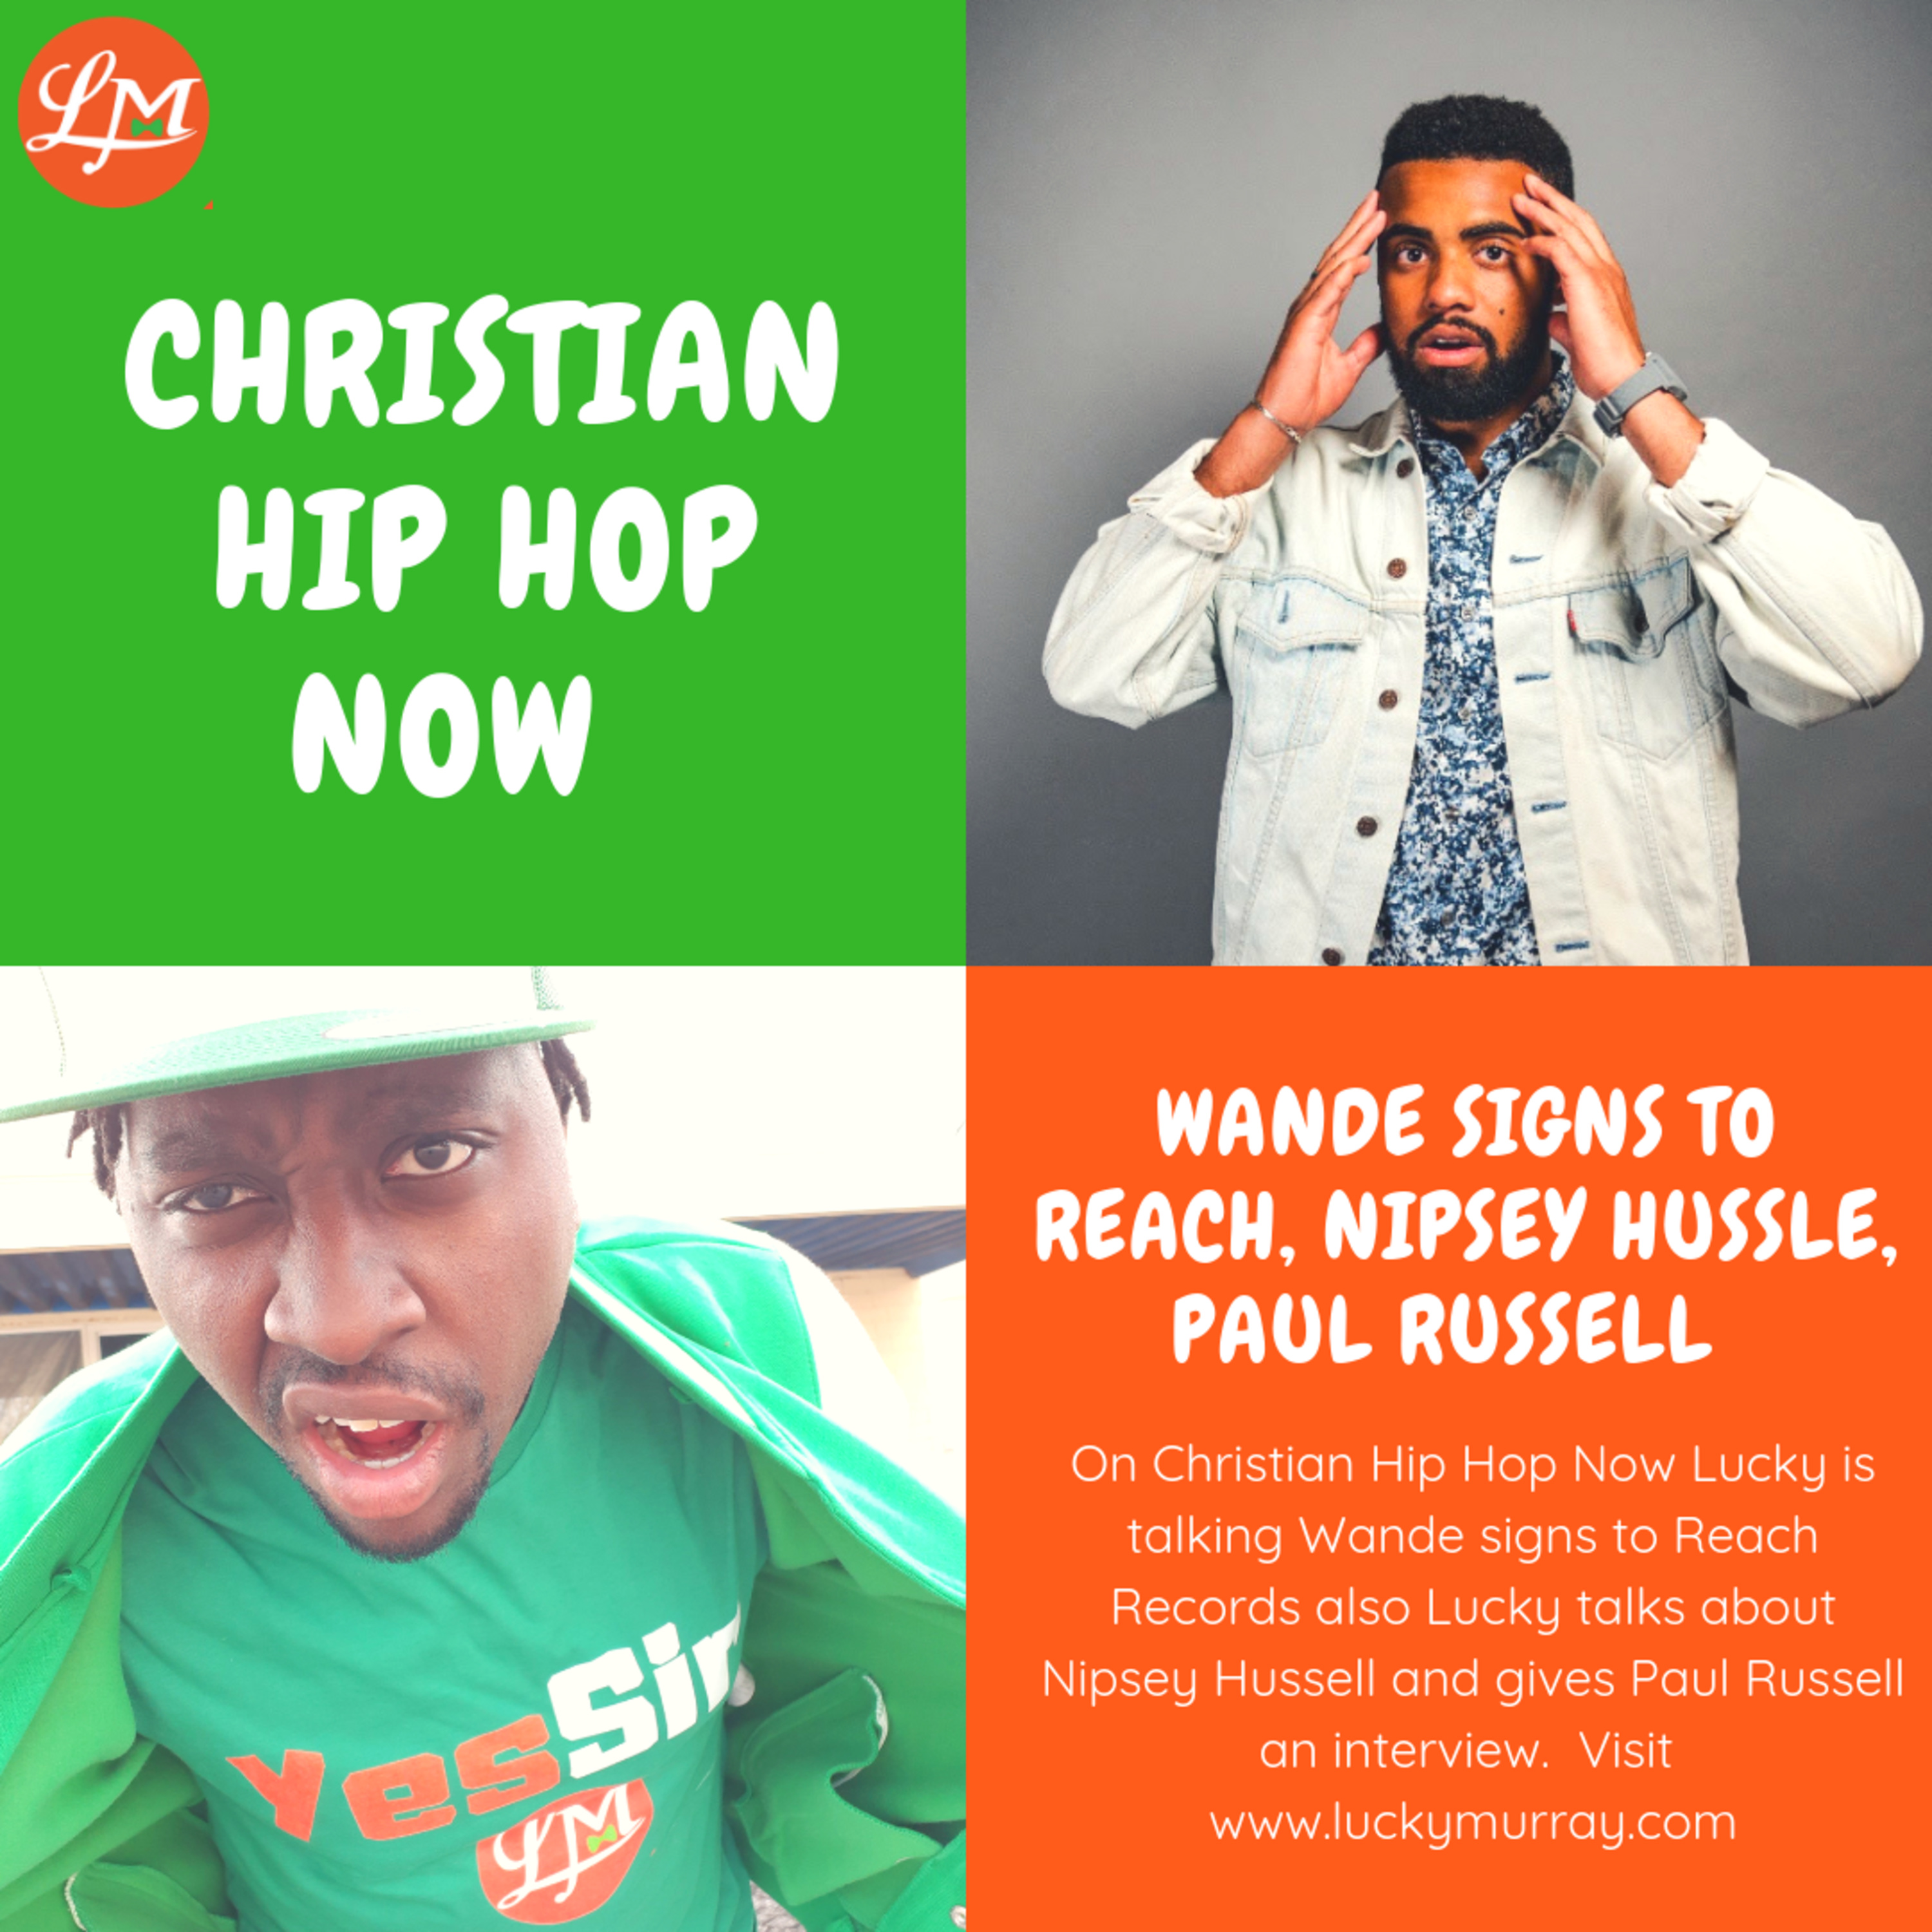 Wande Signs To Reach Records, Nipsey Hussle, Paul Russell Interview